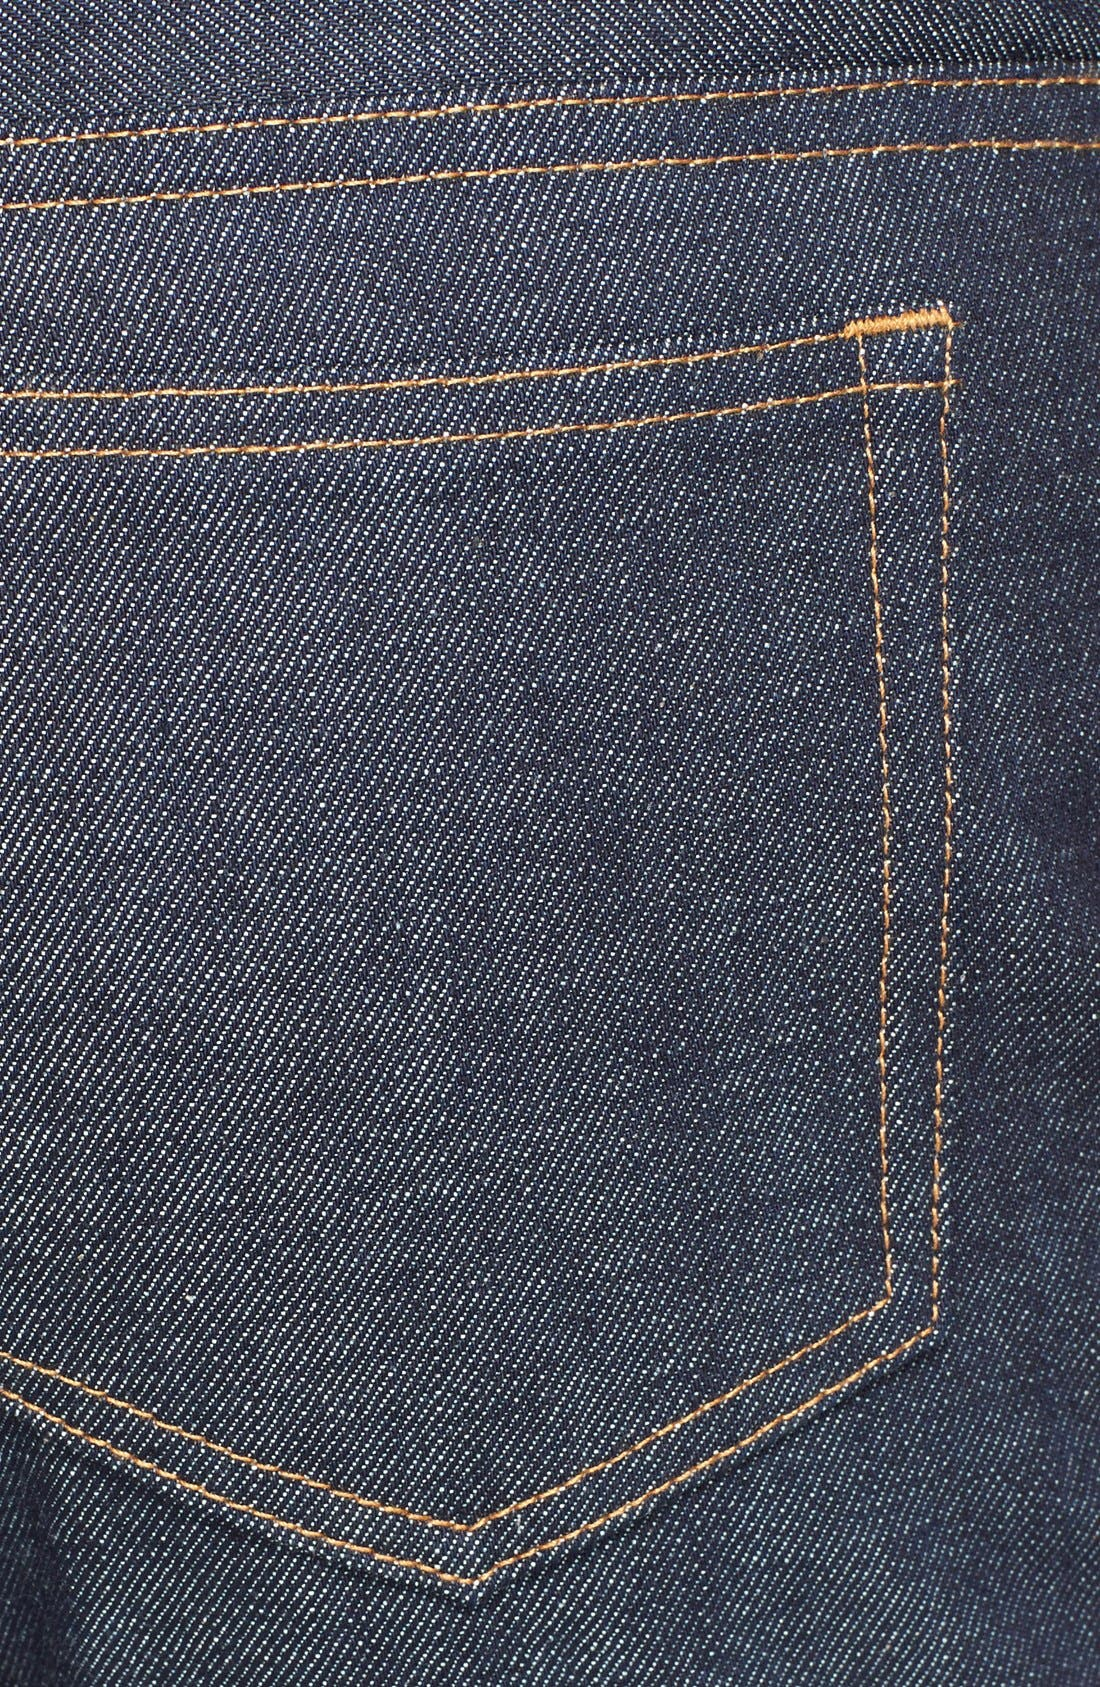 Alternate Image 4  - A.P.C. New Standard Slim Straight Leg Selvedge Jeans (Indigo)